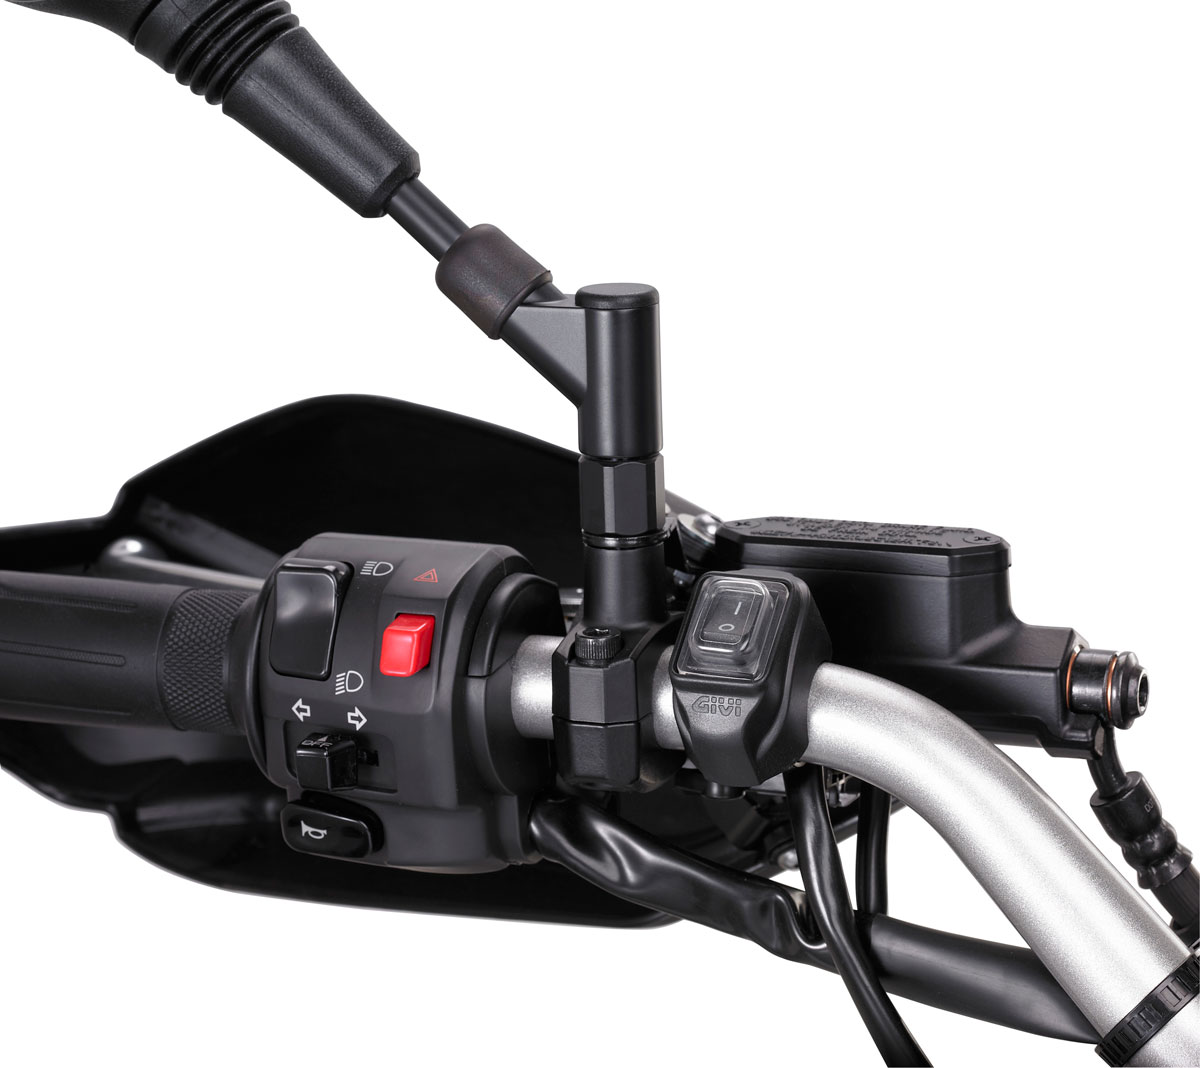 Faretti Alogeni Supplementari Givi S310 Trekker Lights - Fari